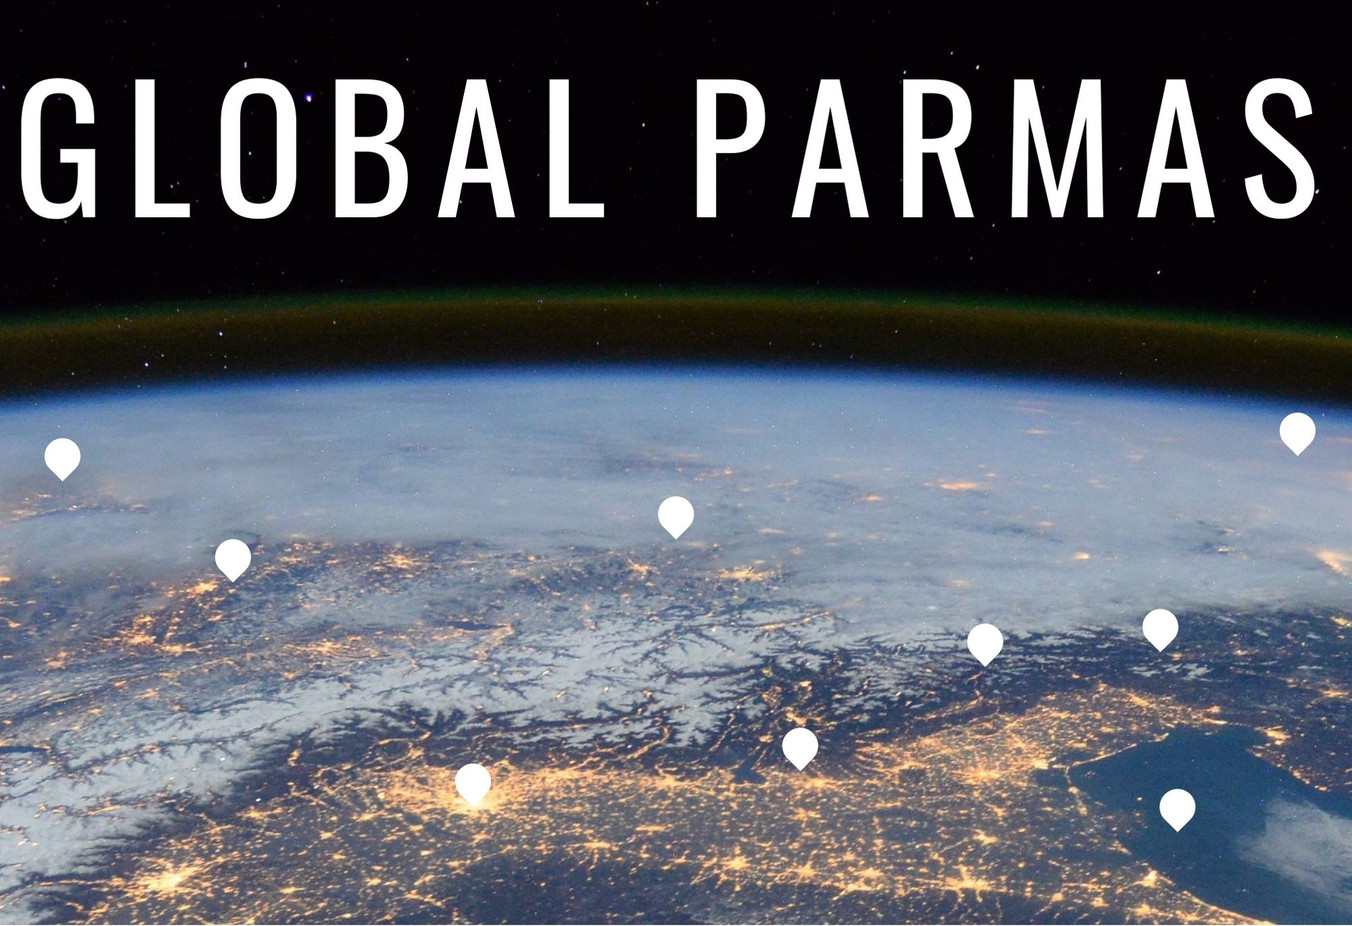 Our Global Parmas Have Landed